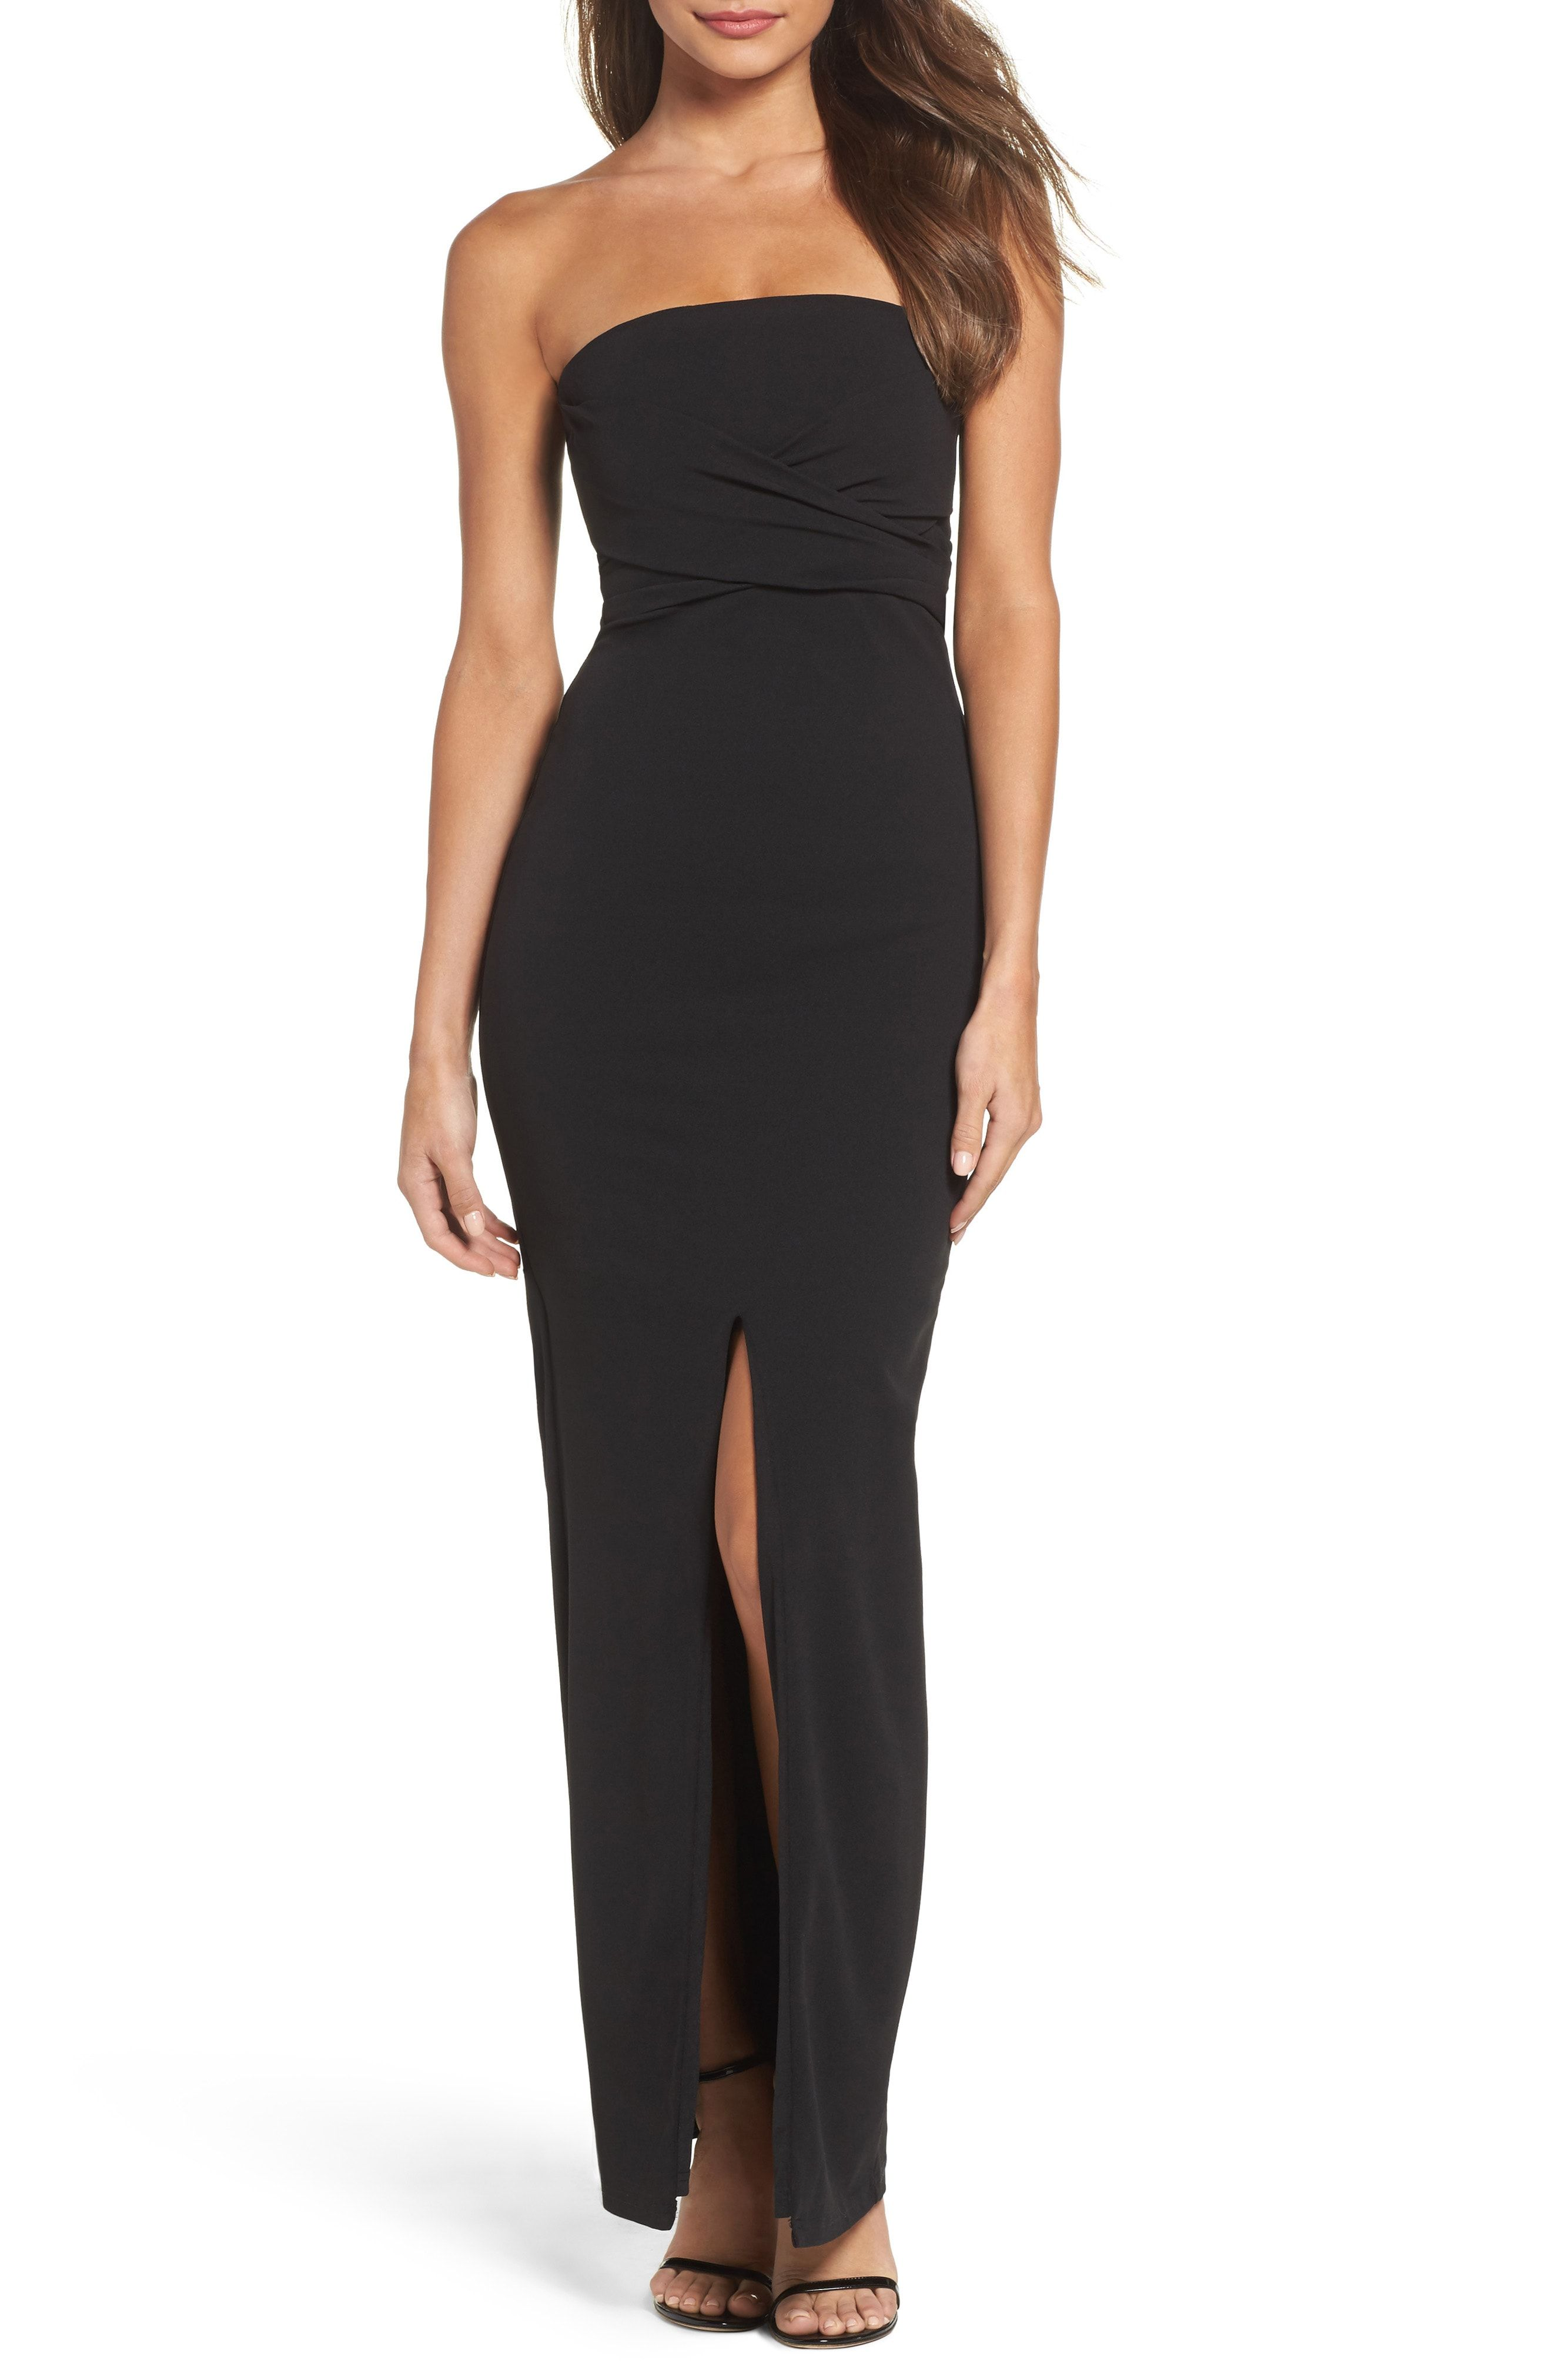 Pin By Dress For The Wedding On Queening Strapless Dress Formal Black Strapless Dress Column Gown [ 4048 x 2640 Pixel ]